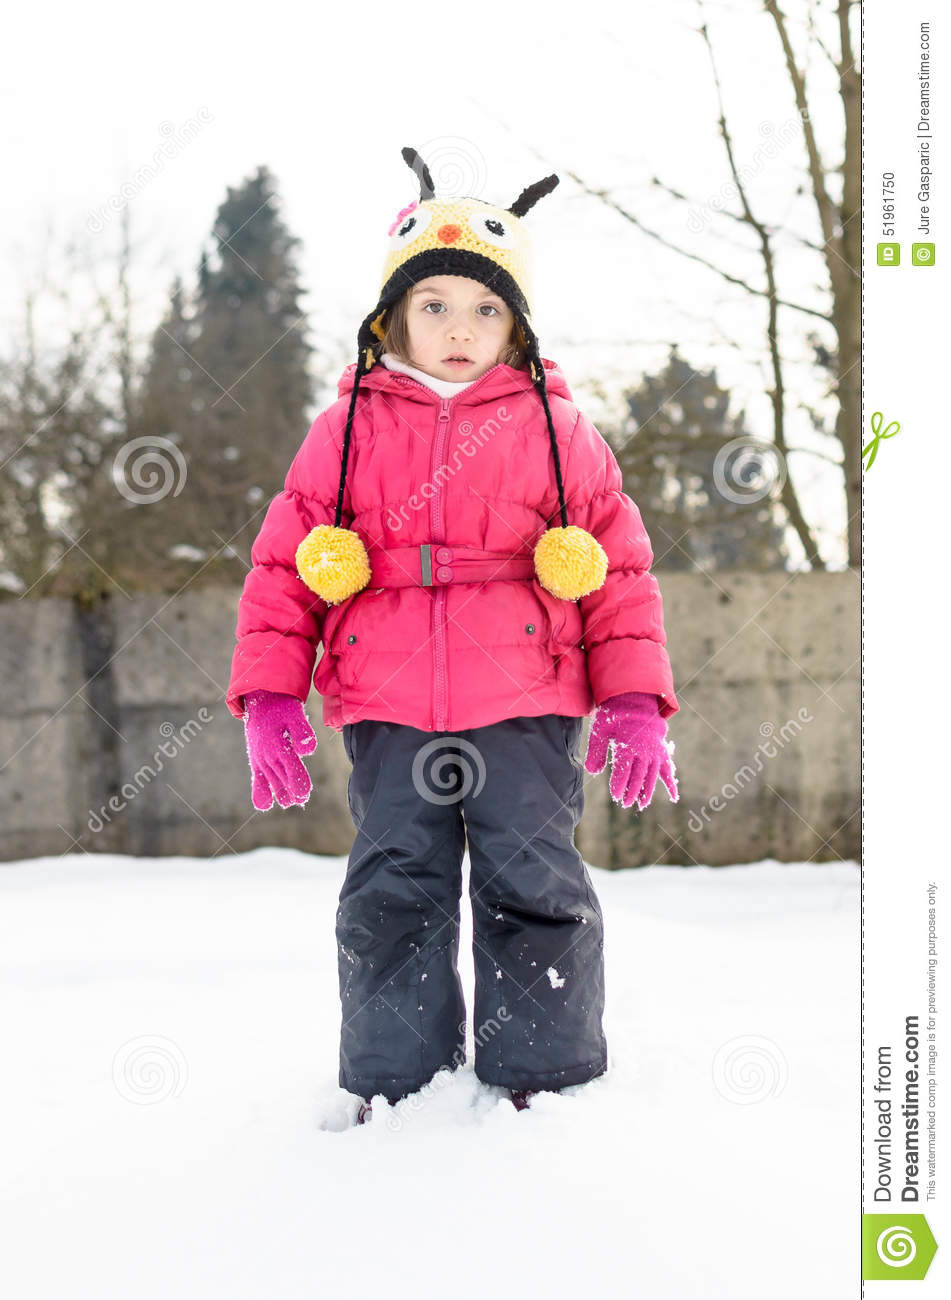 portait of a little girl in winter clothes having fun in